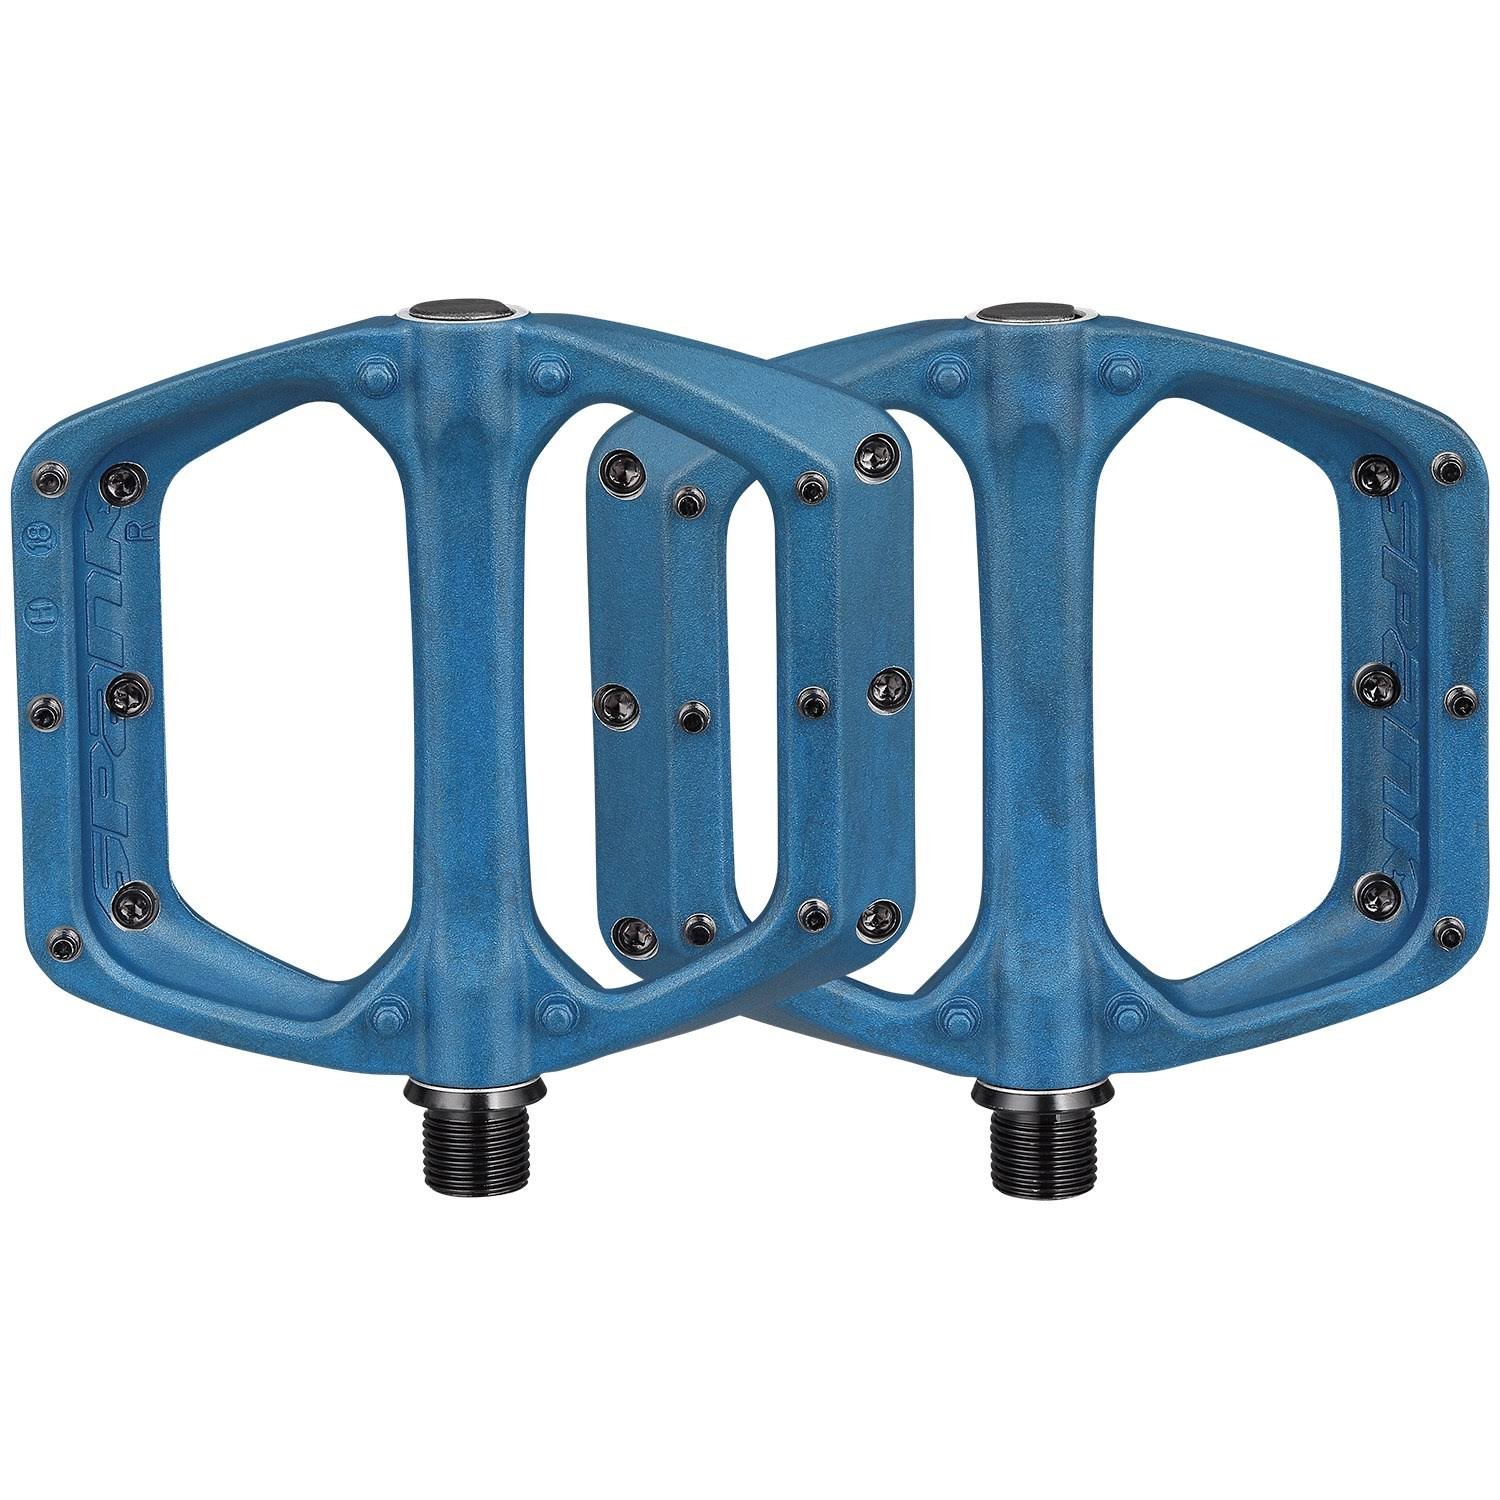 Spank Spoon DC Pedals - Blue